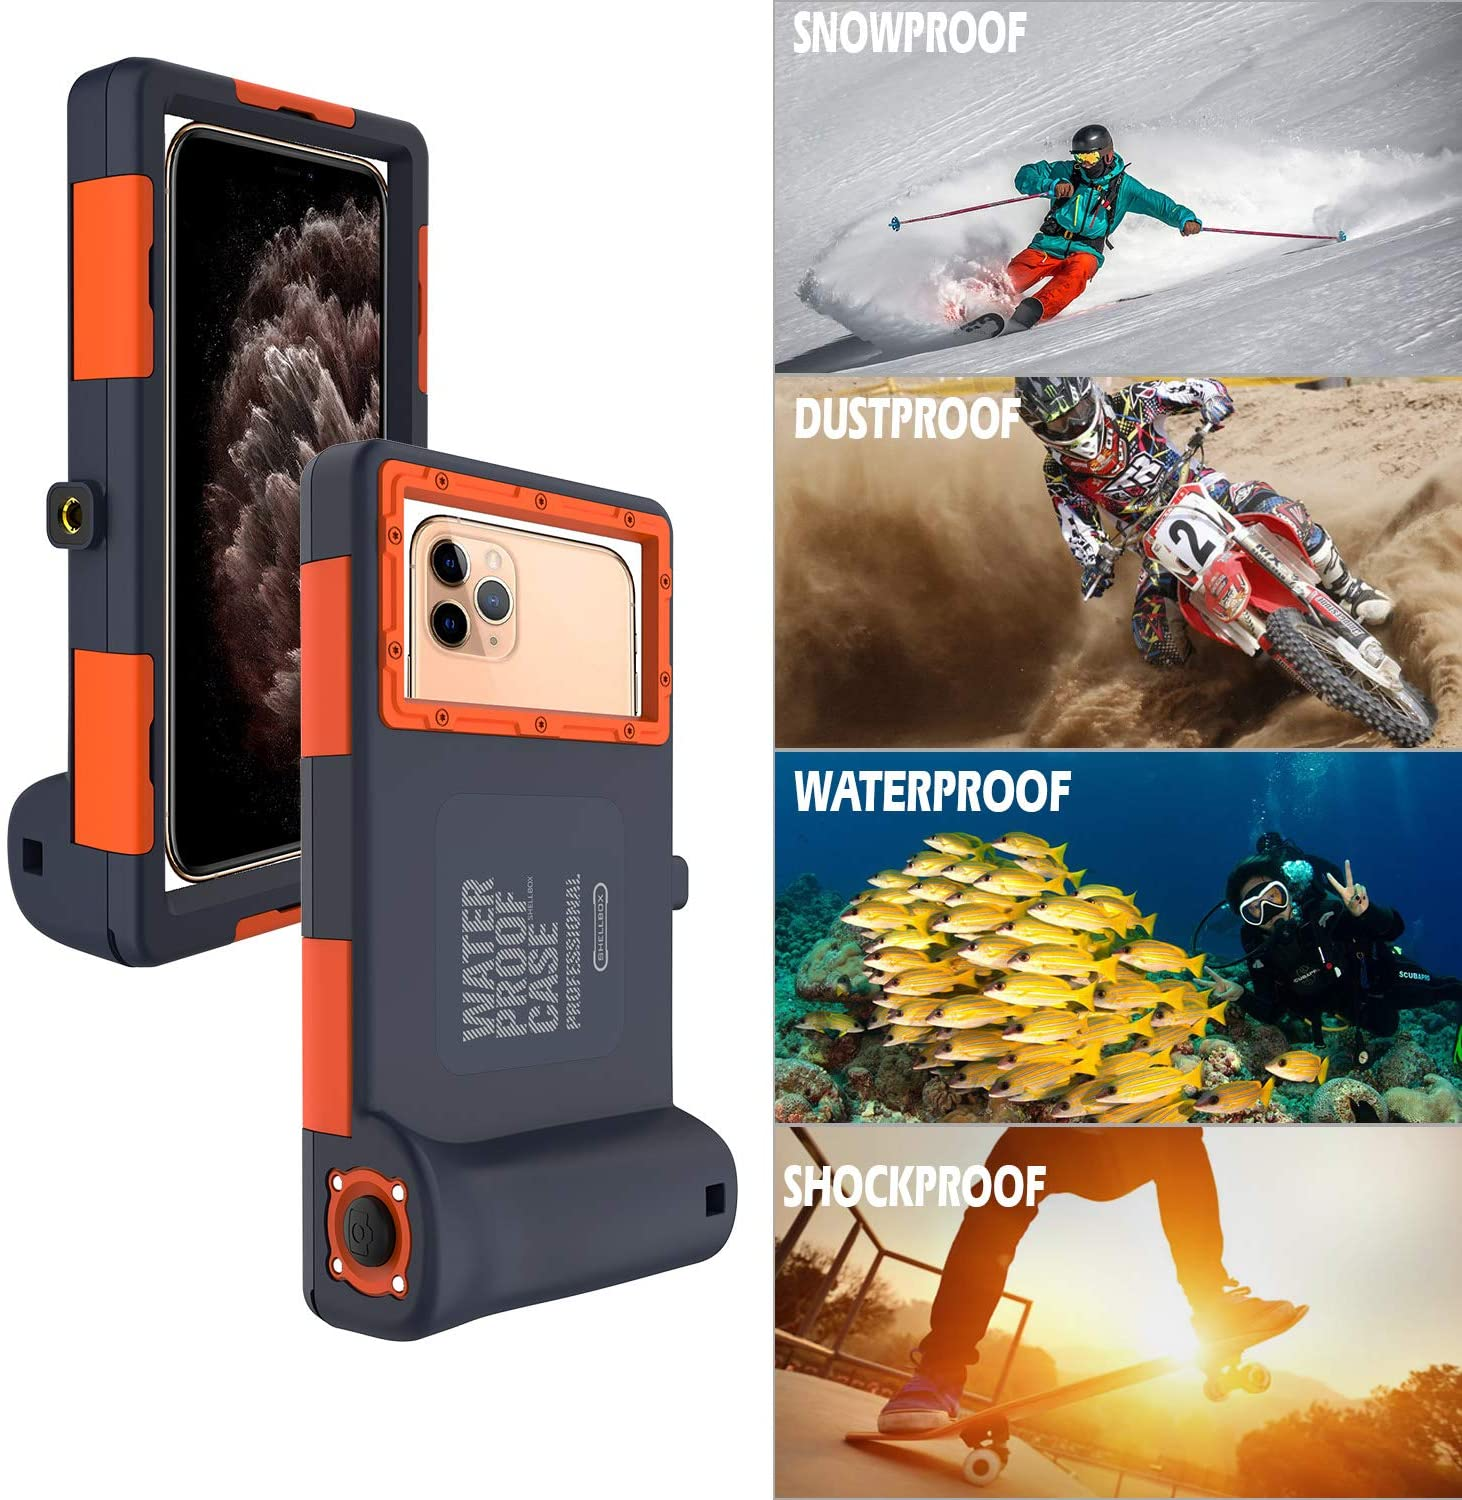 Professional Waterproof, Dustproof & shockproof Protective Case For iphone and Galaxy Series